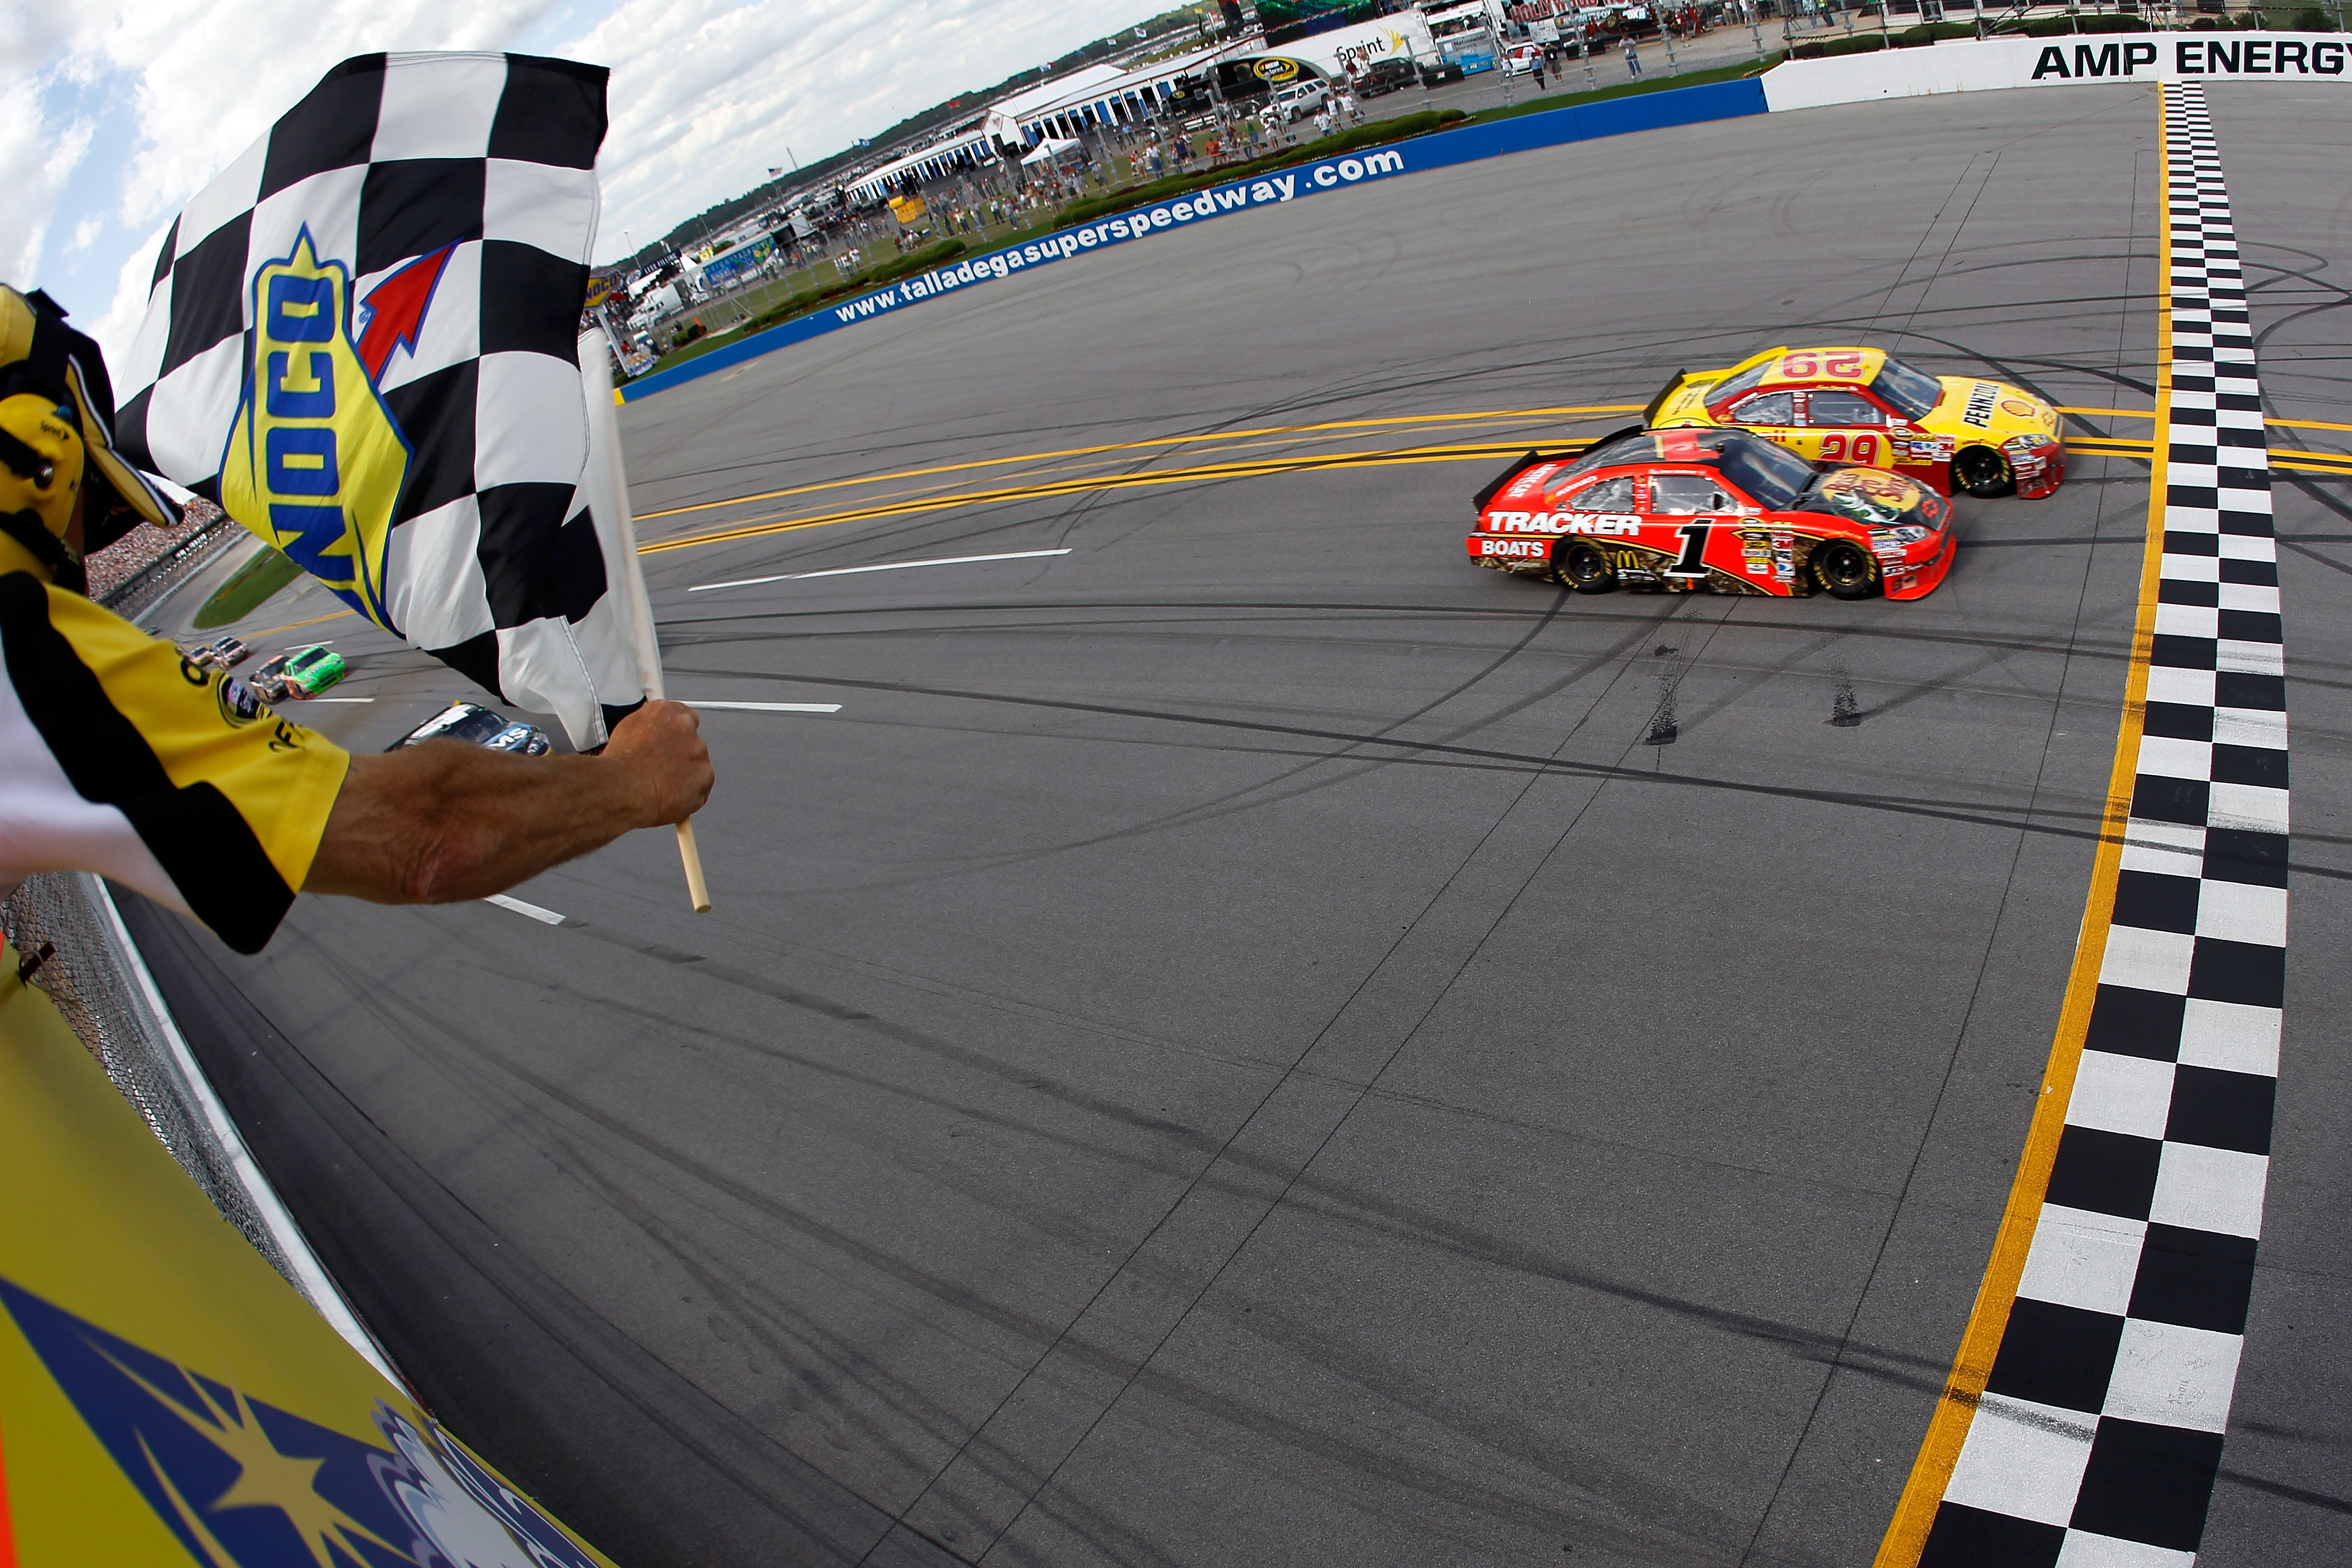 TALLADEGA, AL - APRIL 25:  Kevin Harvick, driver of the #29 Shell/Pennzoil Chevrolet, crosses the finish line ahead of Jamie McMurray, driver of the #1 Bass Pro Shops Chevrolet, to win the NASCAR Sprint Cup Series Aaron's 499 at Talladega Superspeedway on